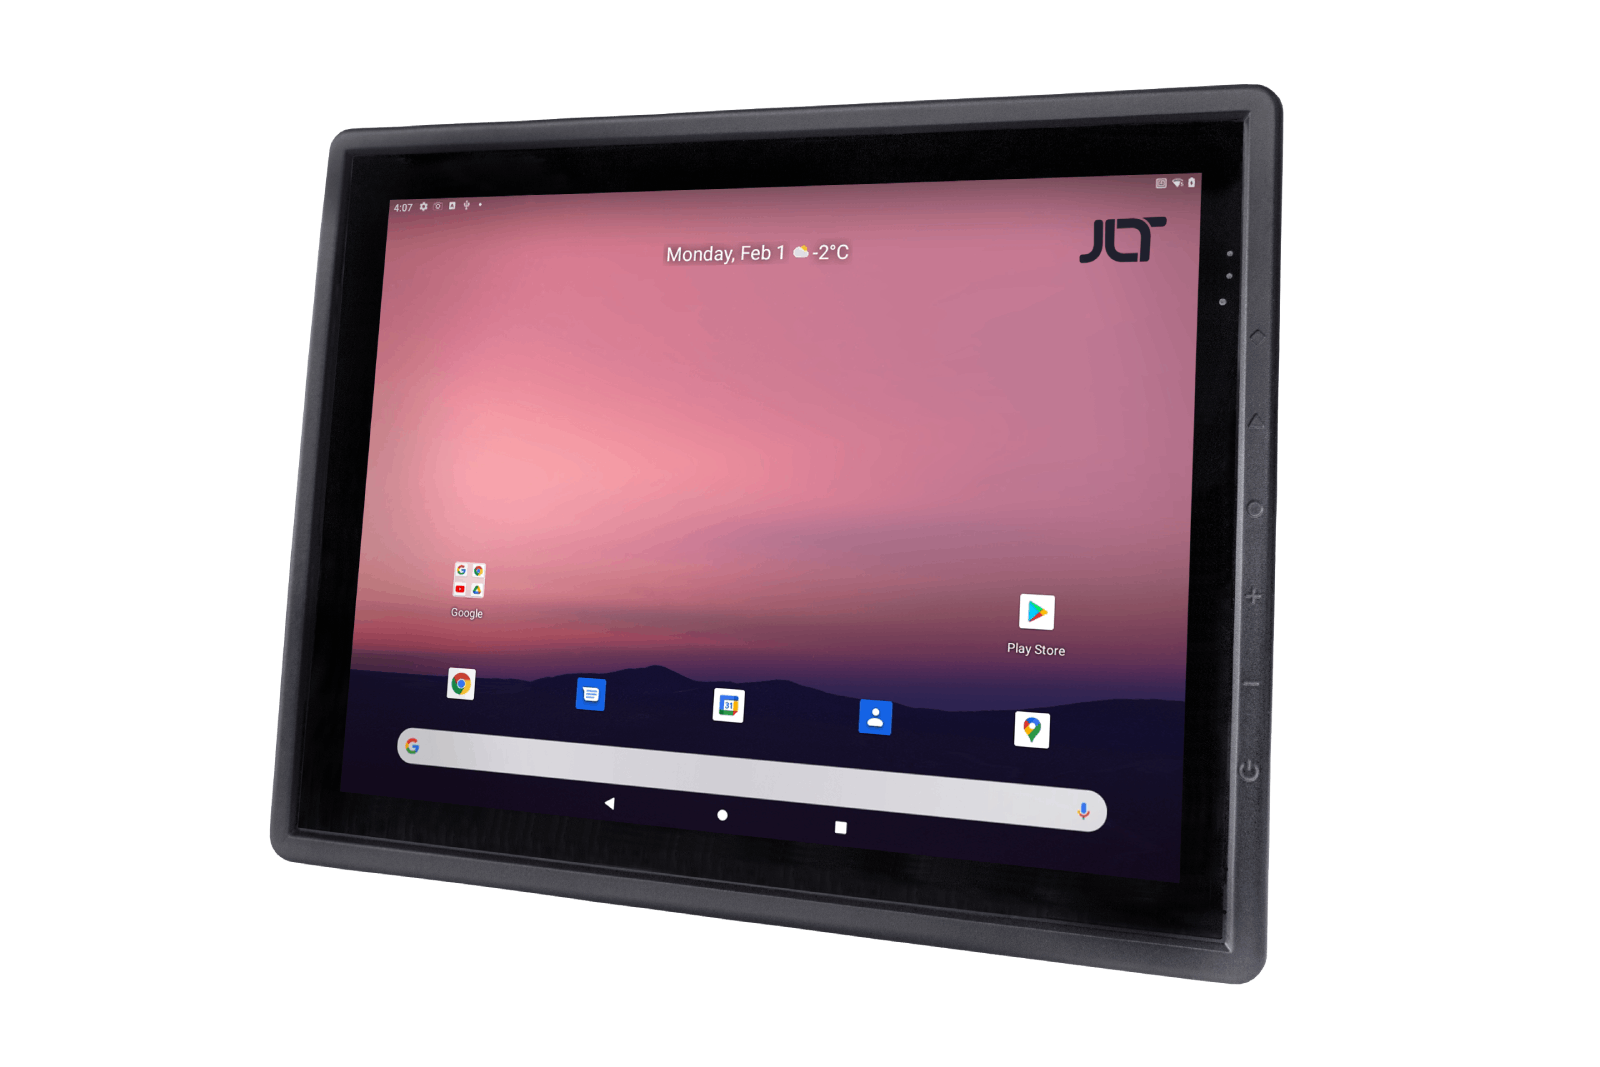 JLT6012A Front Angle